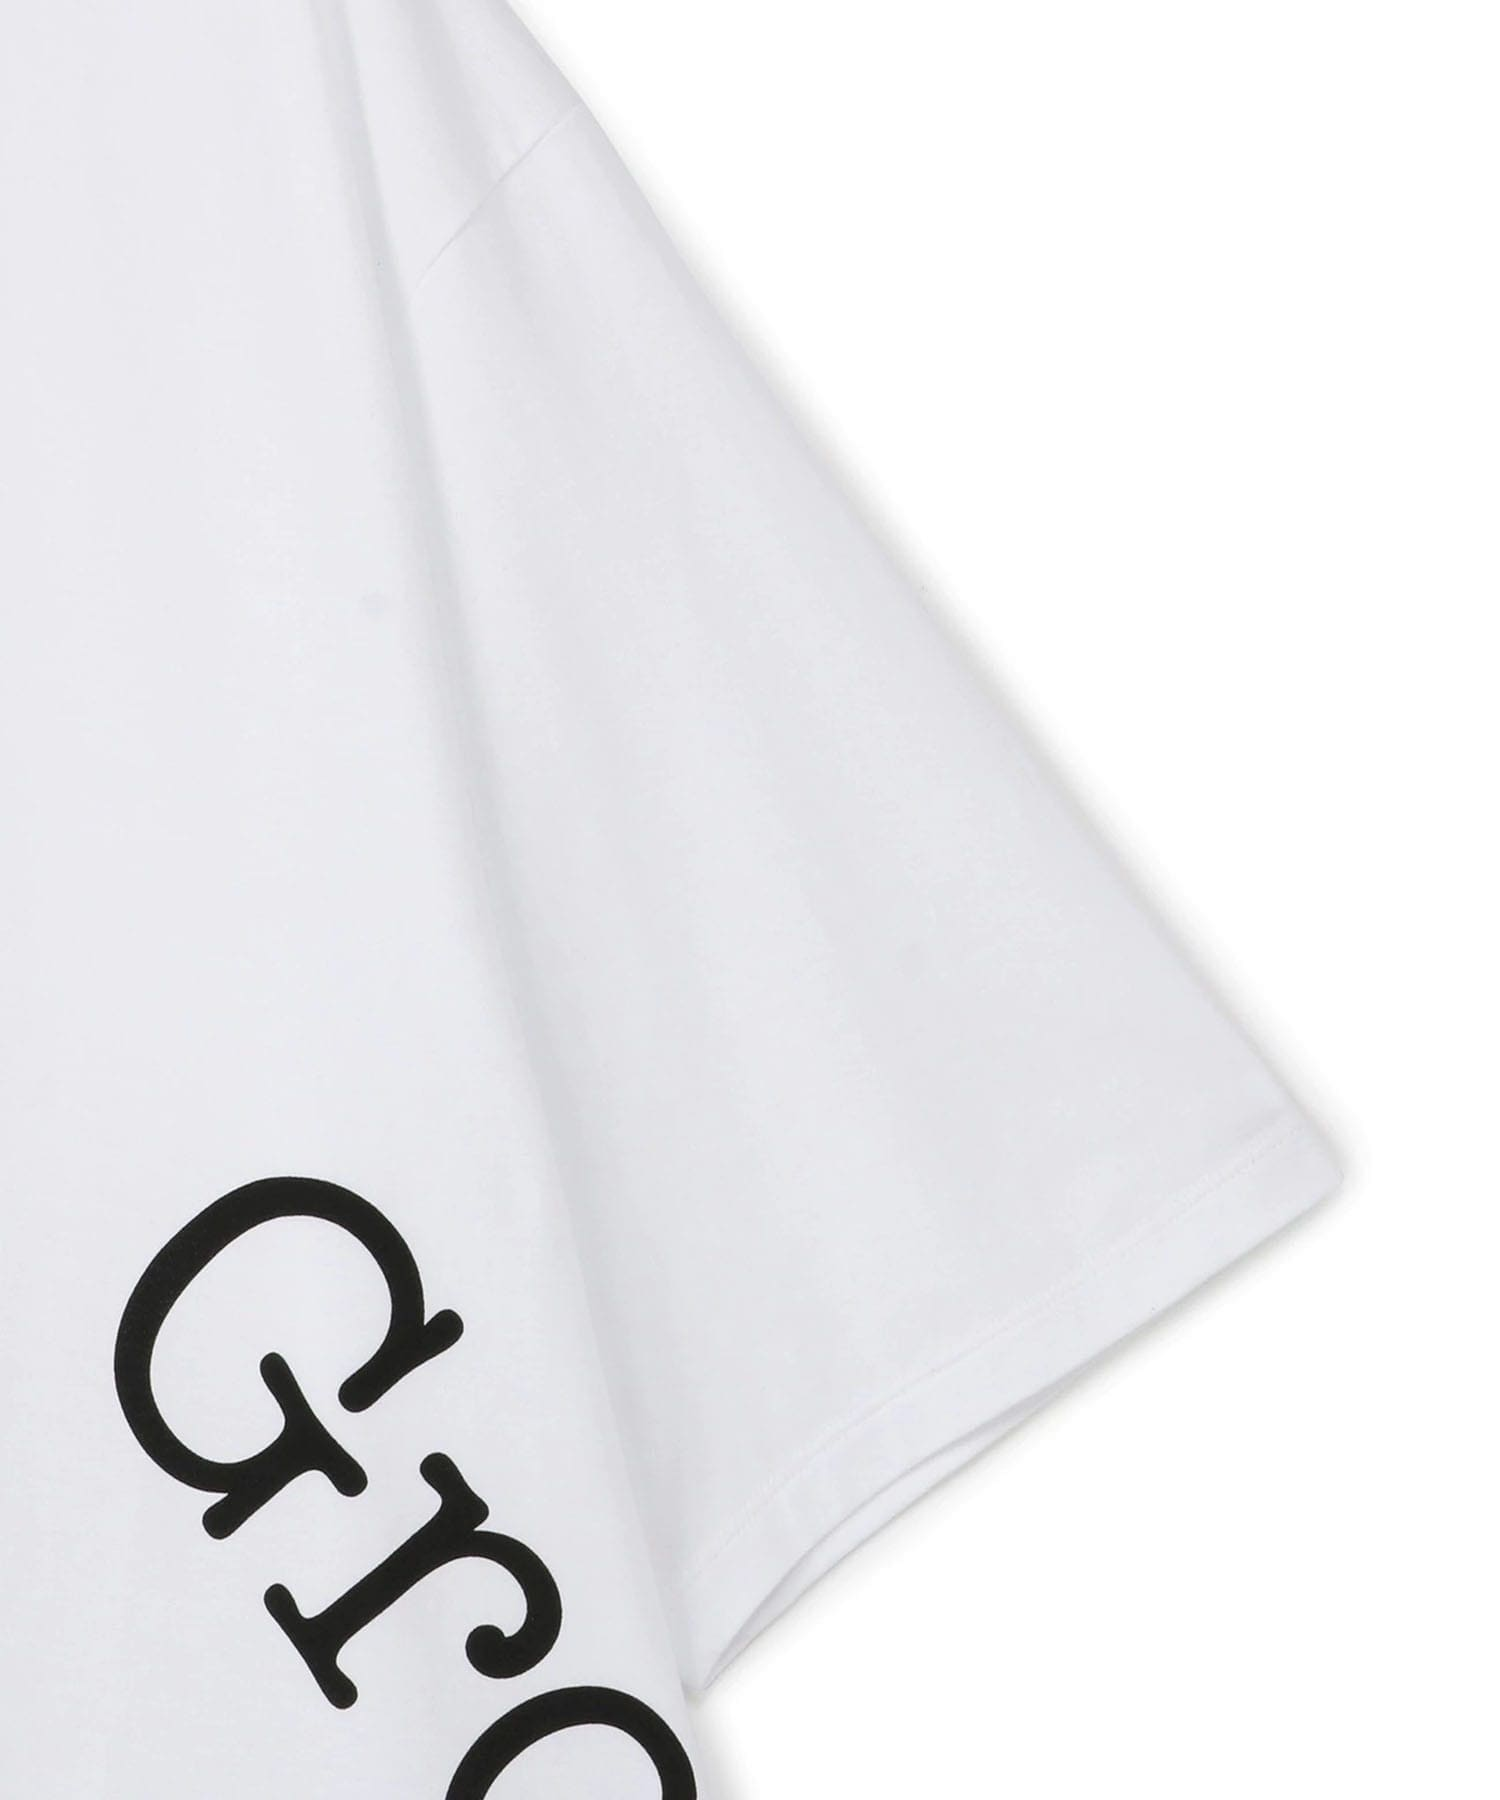 GY Logo Jumbo Graphic GroundY